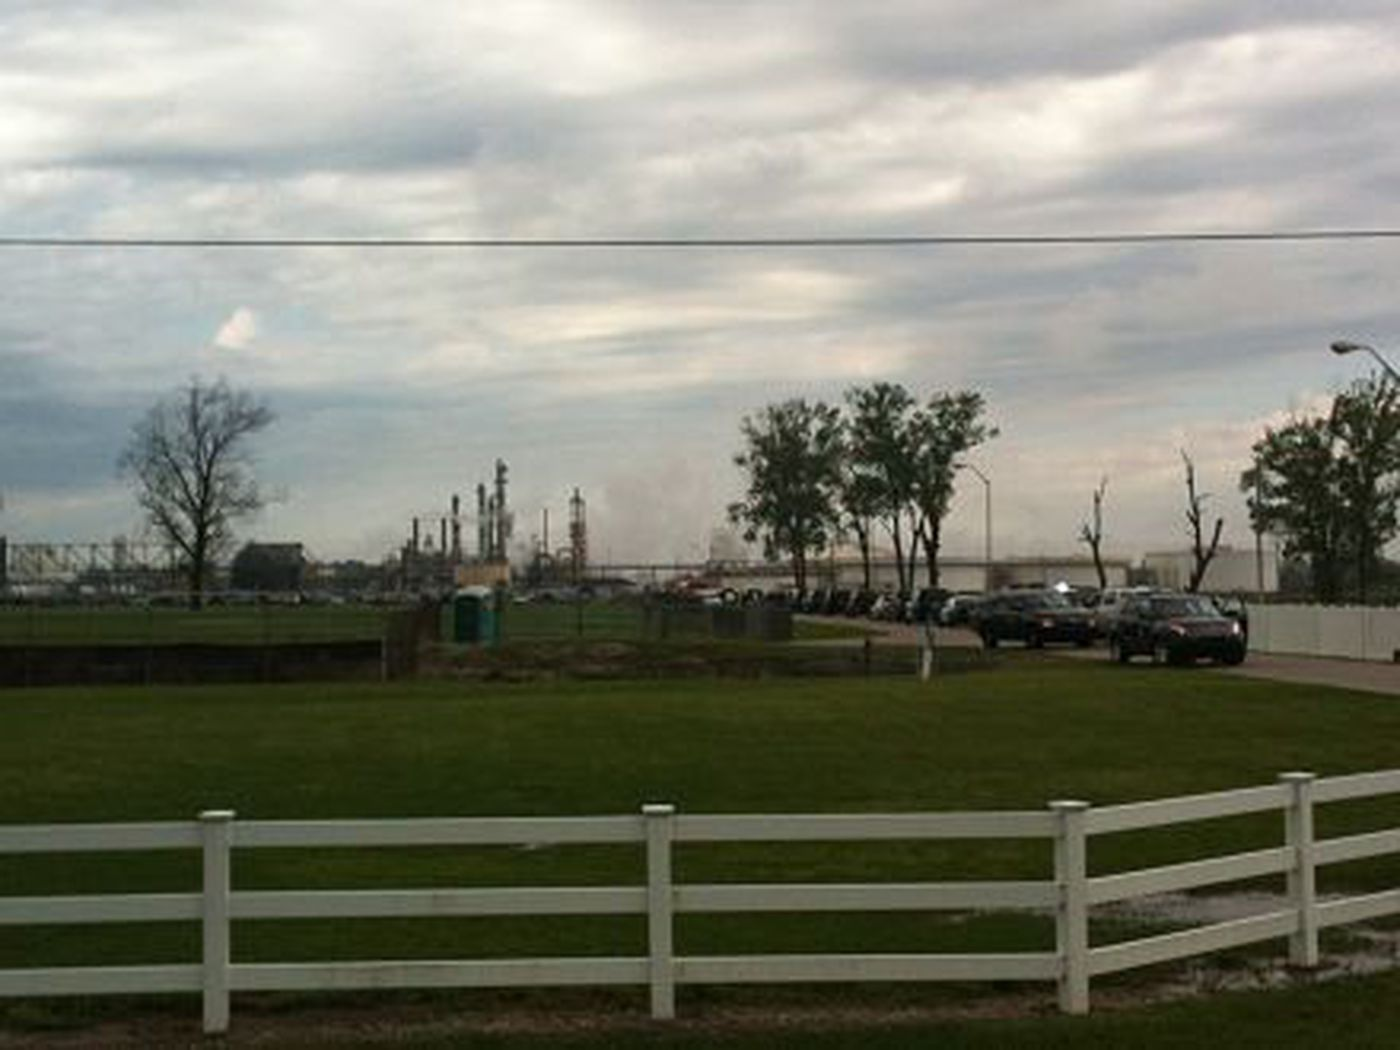 Explosion And Chemical Fire At Geismar Plant